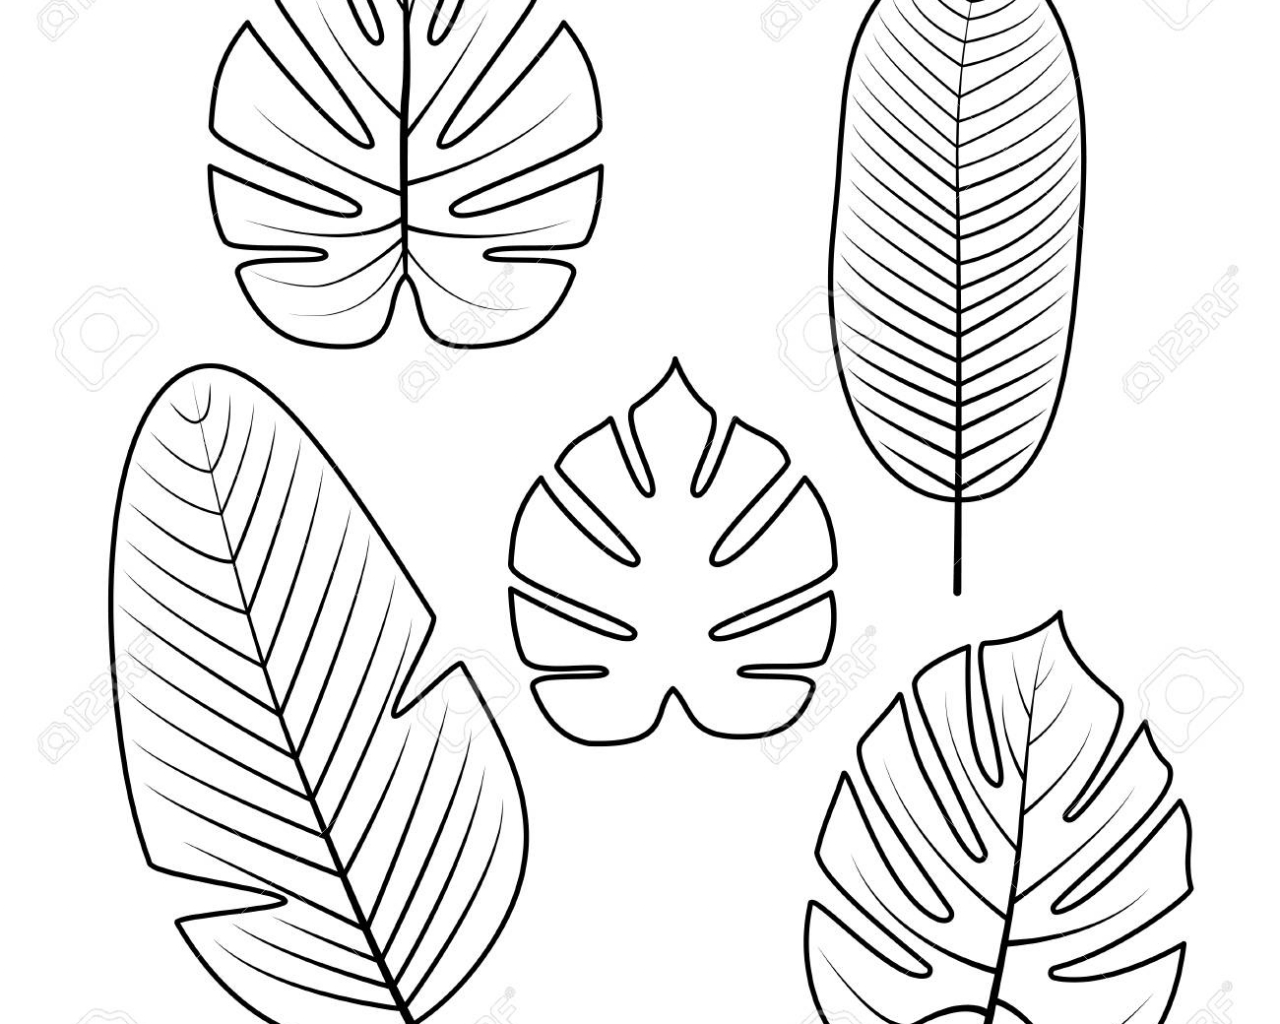 Free Download Tropical Palm Leaves Isolated On White Background Outline Vector 1300x1300 For Your Desktop Mobile Tablet Explore 53 Background Outline Background Outline Outline Of The Yellow Wallpaper The You can also click related recommendations to view more background images in our. tropical palm leaves isolated